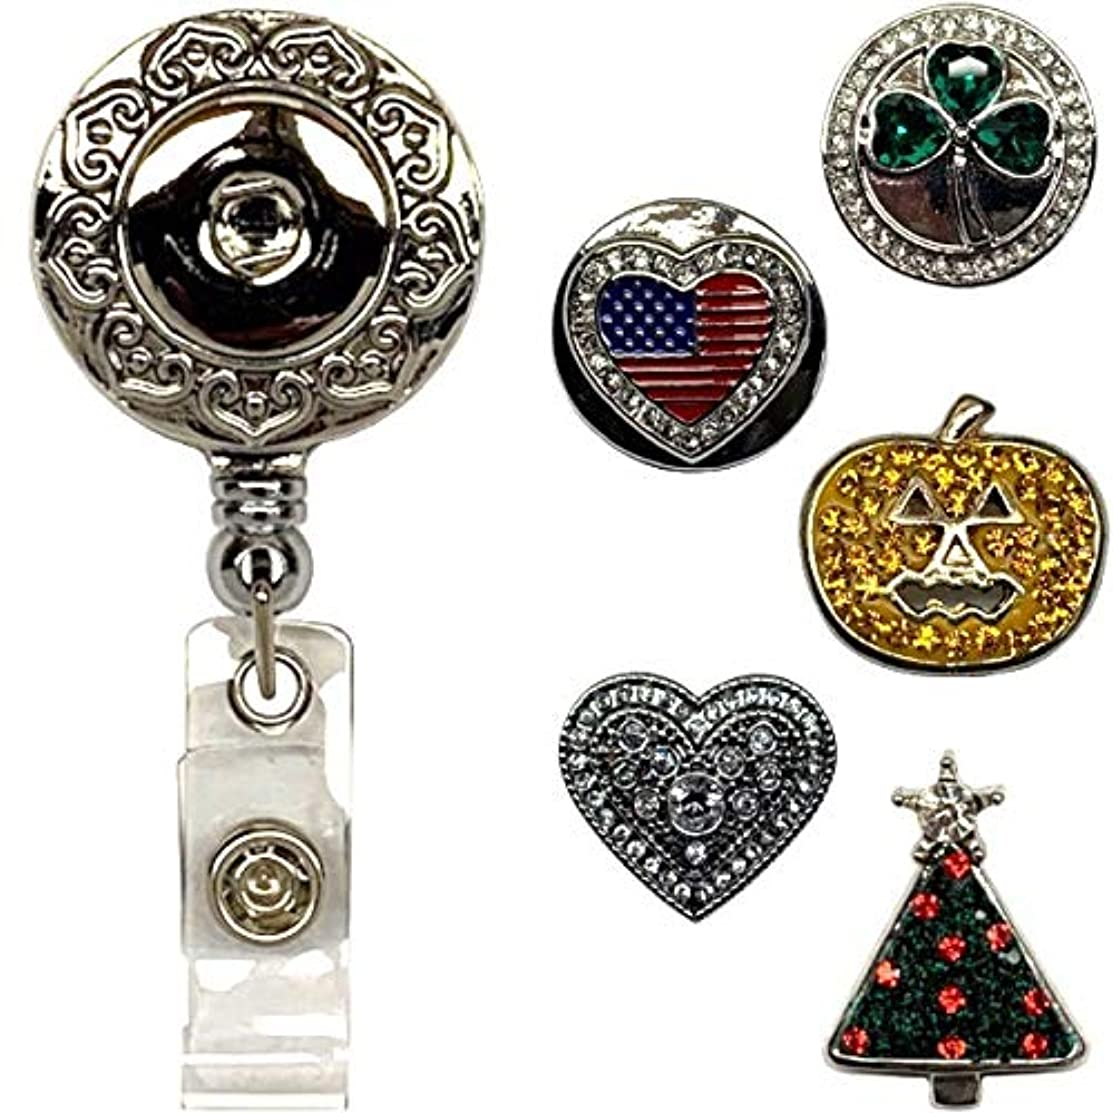 Real Charming Snap Charm Premium Decorative Badge Reel - Retractable ID Holder with Belt Clip and 5 Snap Charms Jewelry Set (OH Holiday)